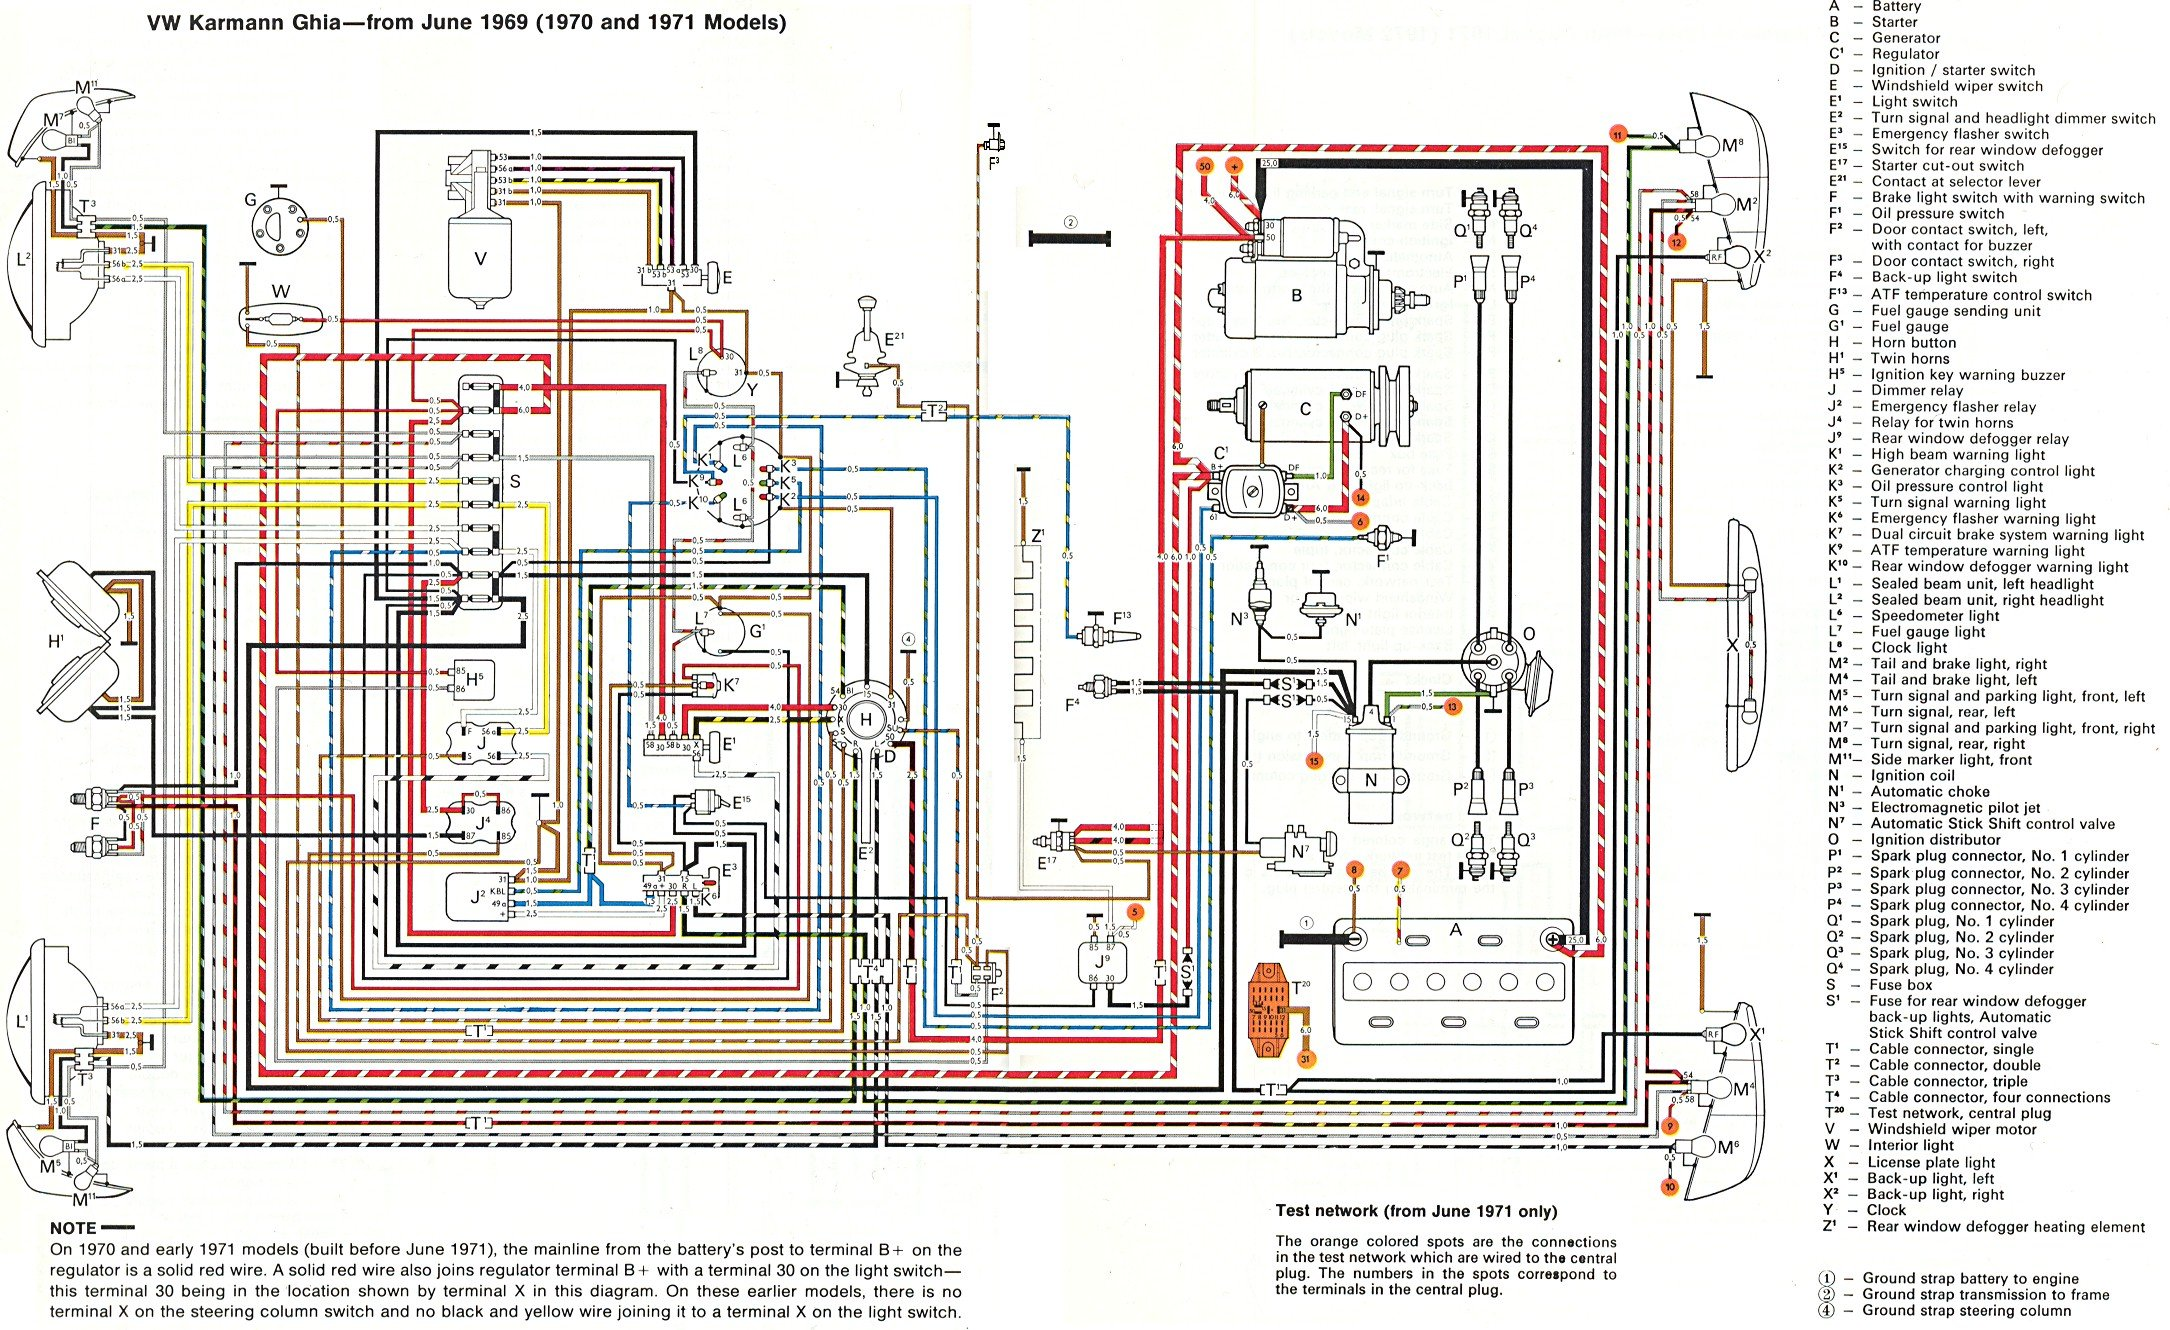 1973 karmann ghia wiring diagram trusted wiring diagrams u2022 rh sivamuni com